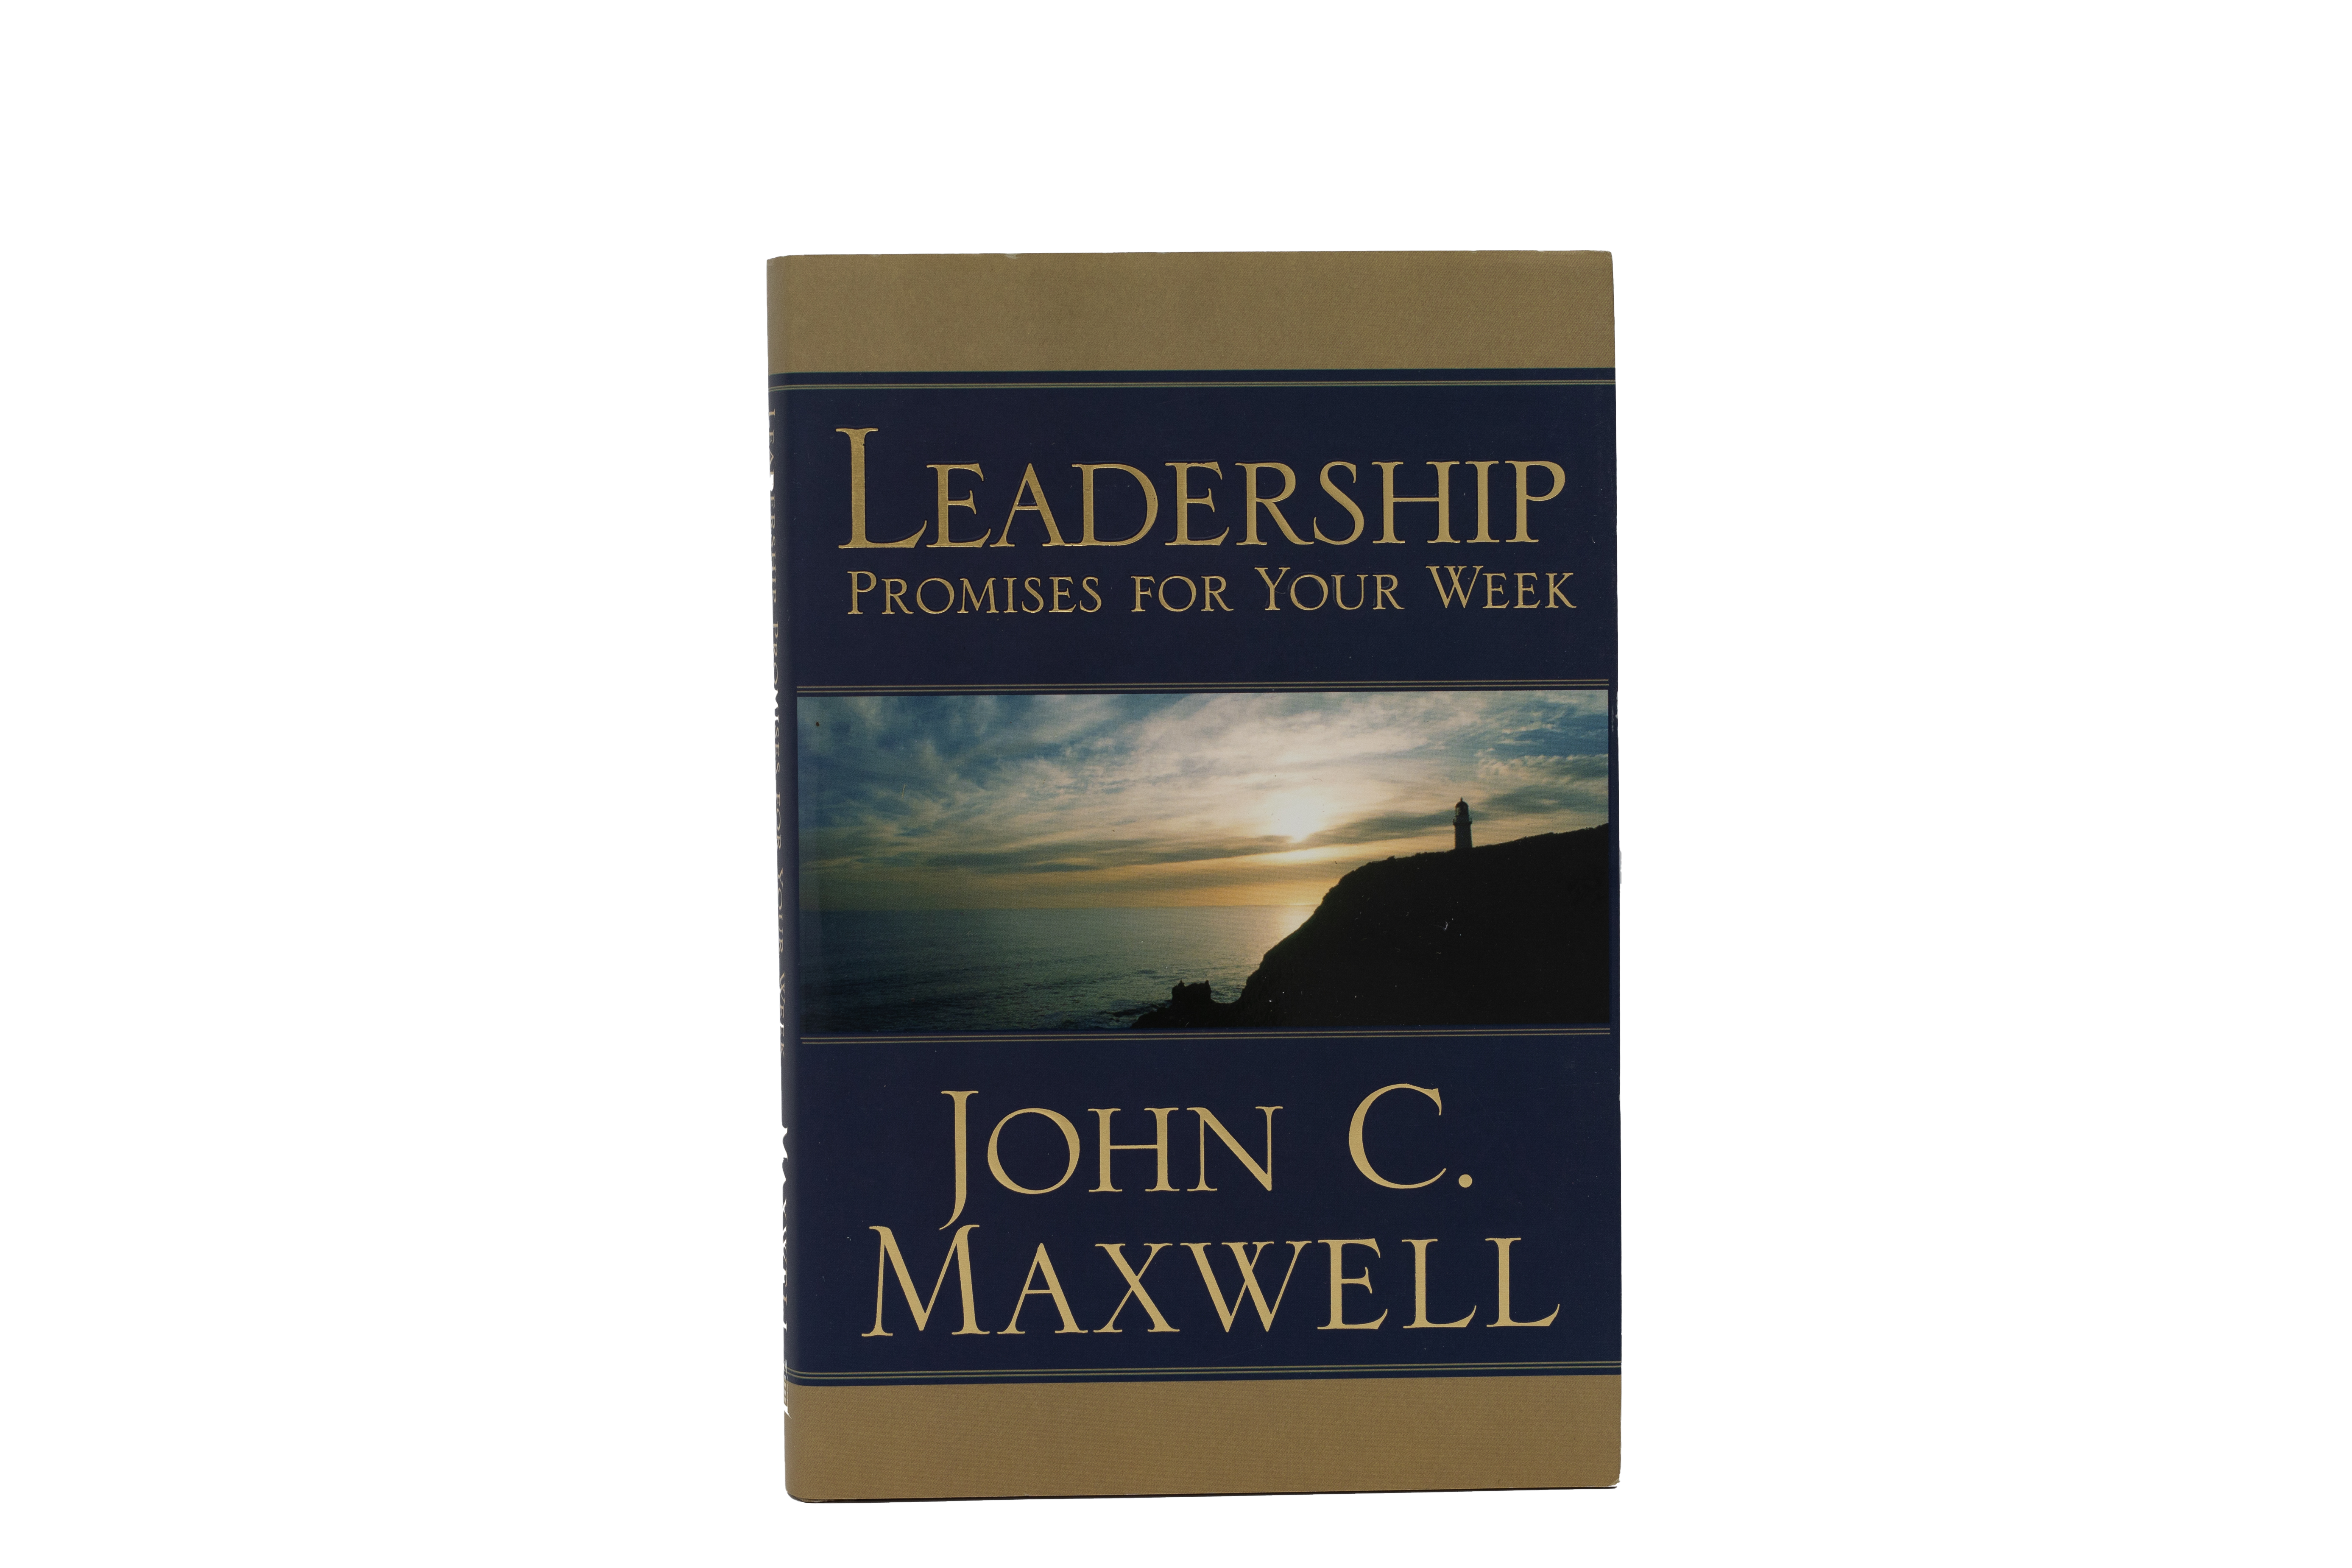 Leadership Promises for Your Week [Hardcover]